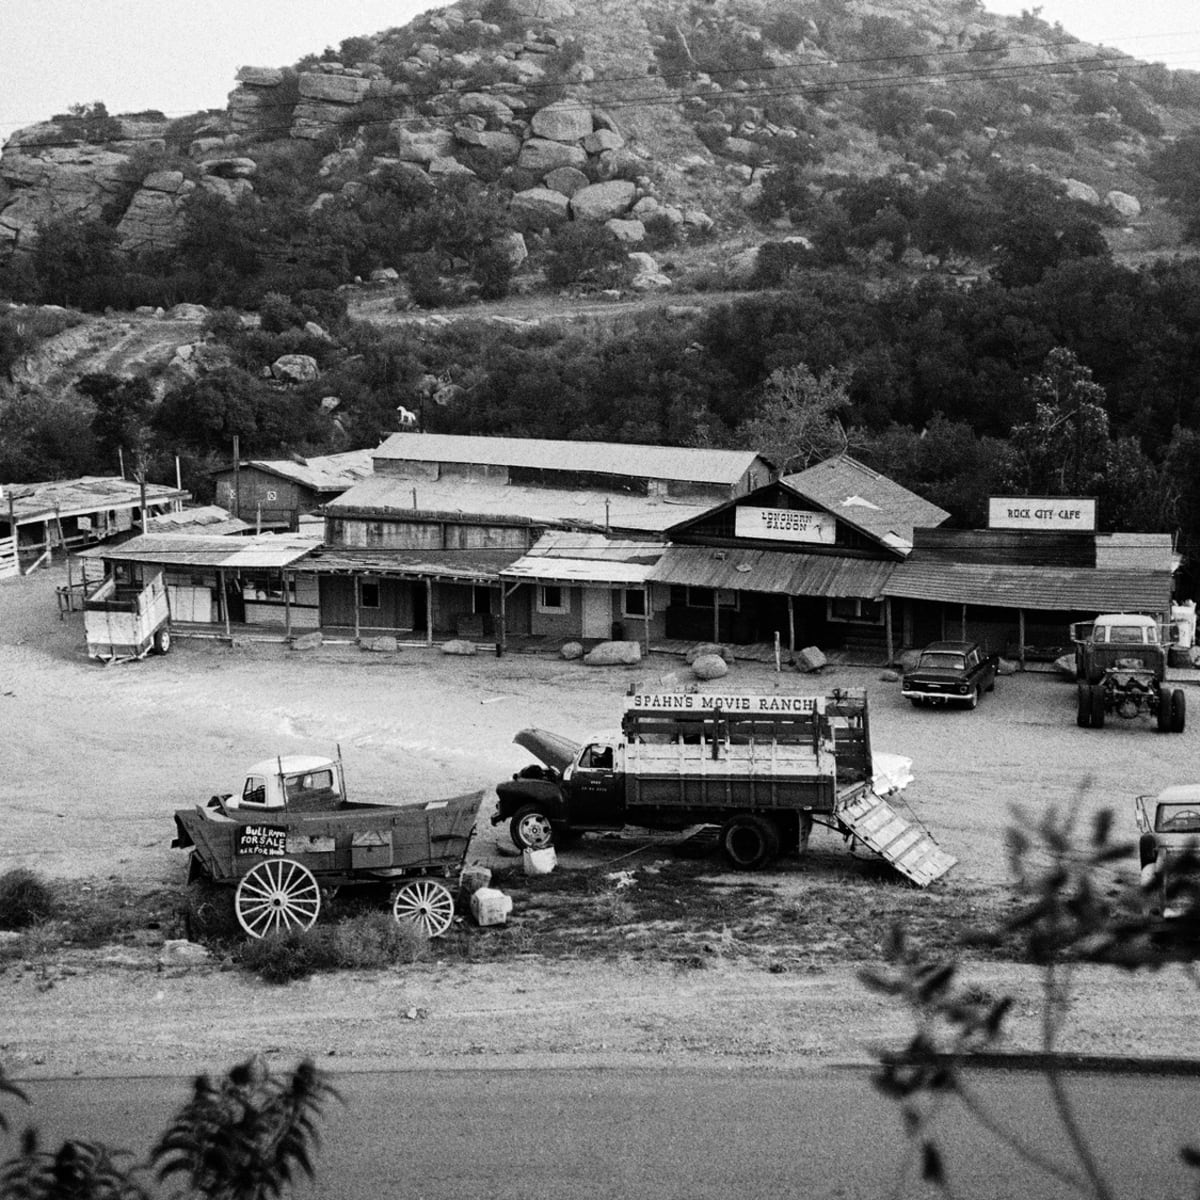 How Spahn Movie Ranch Became Manson Family Headquarters History